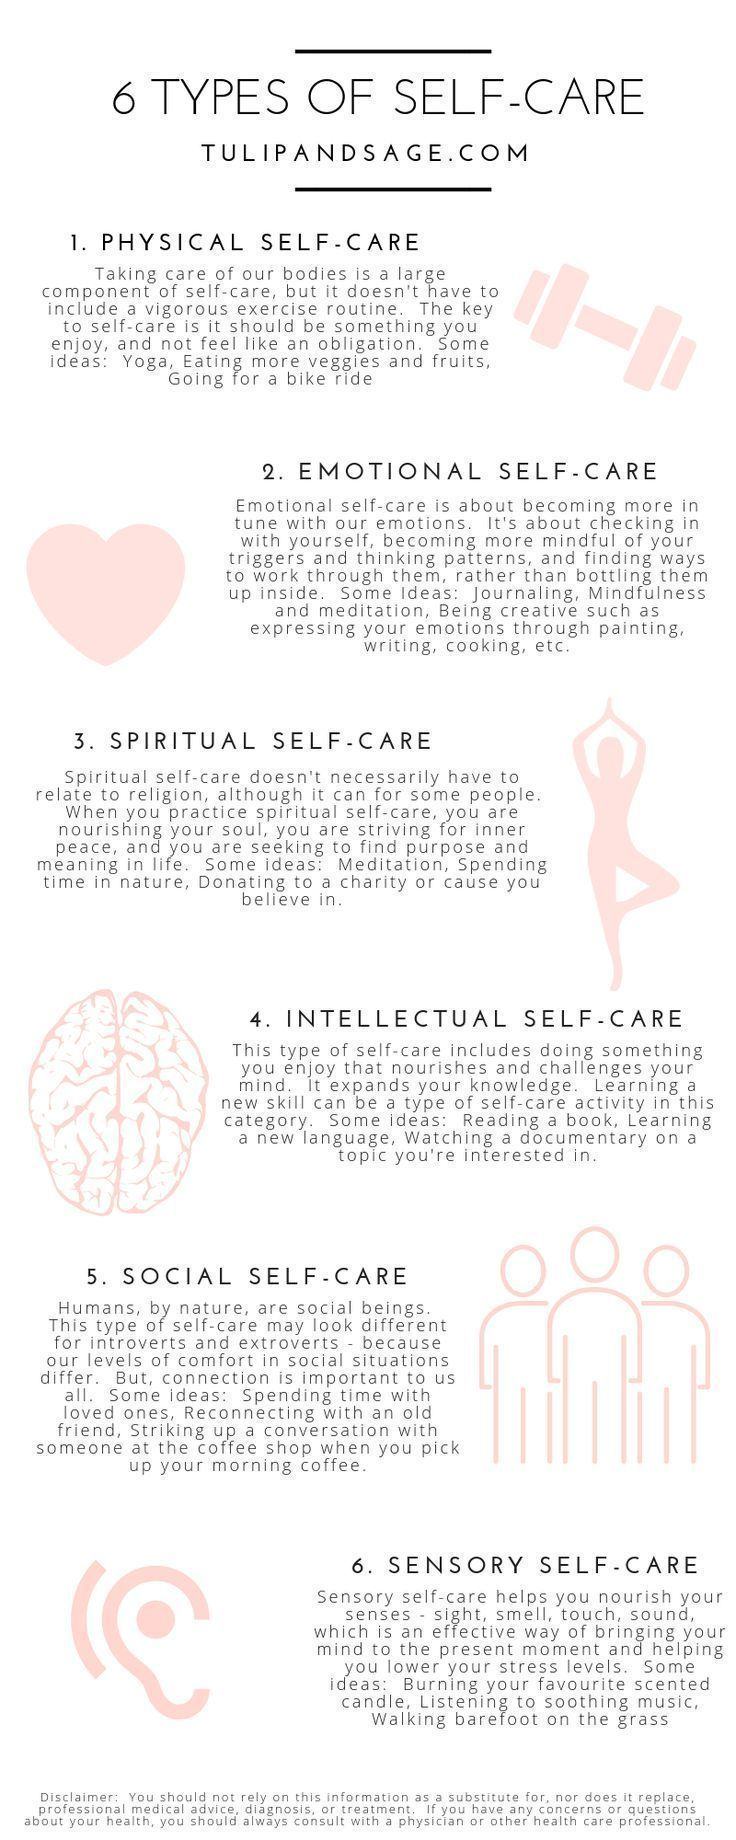 6 Types of Self-Care & Ways to Practice Them